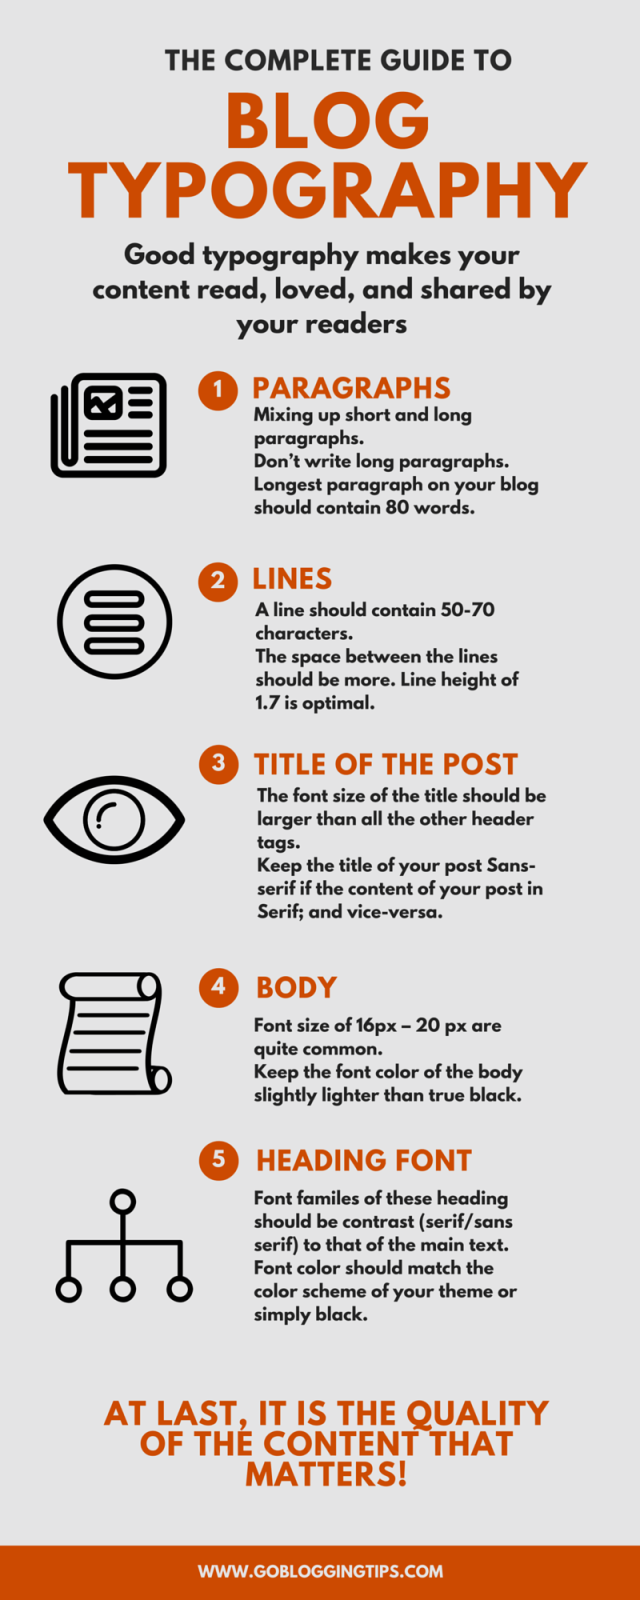 The Complete Guide to Blog Typography - BloggingX